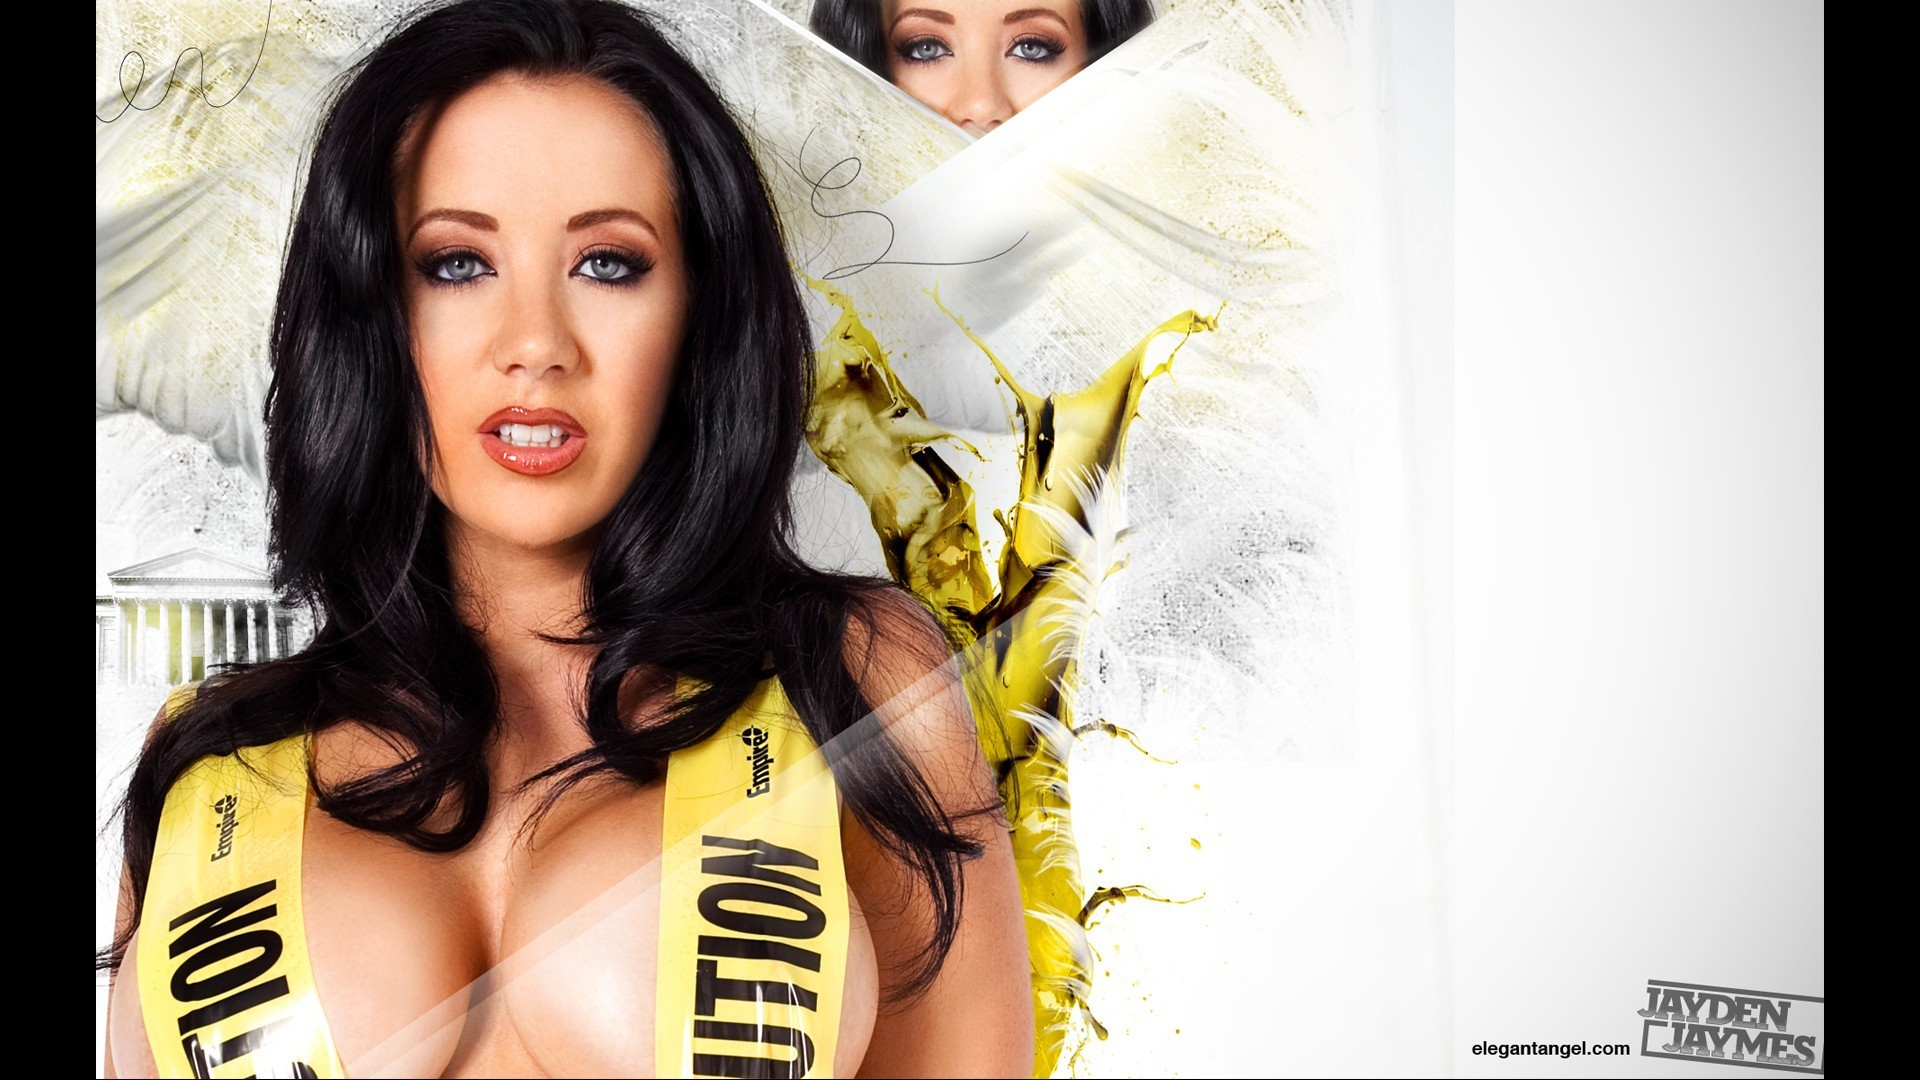 Jayden Jaymes Download Free Backgrounds HD